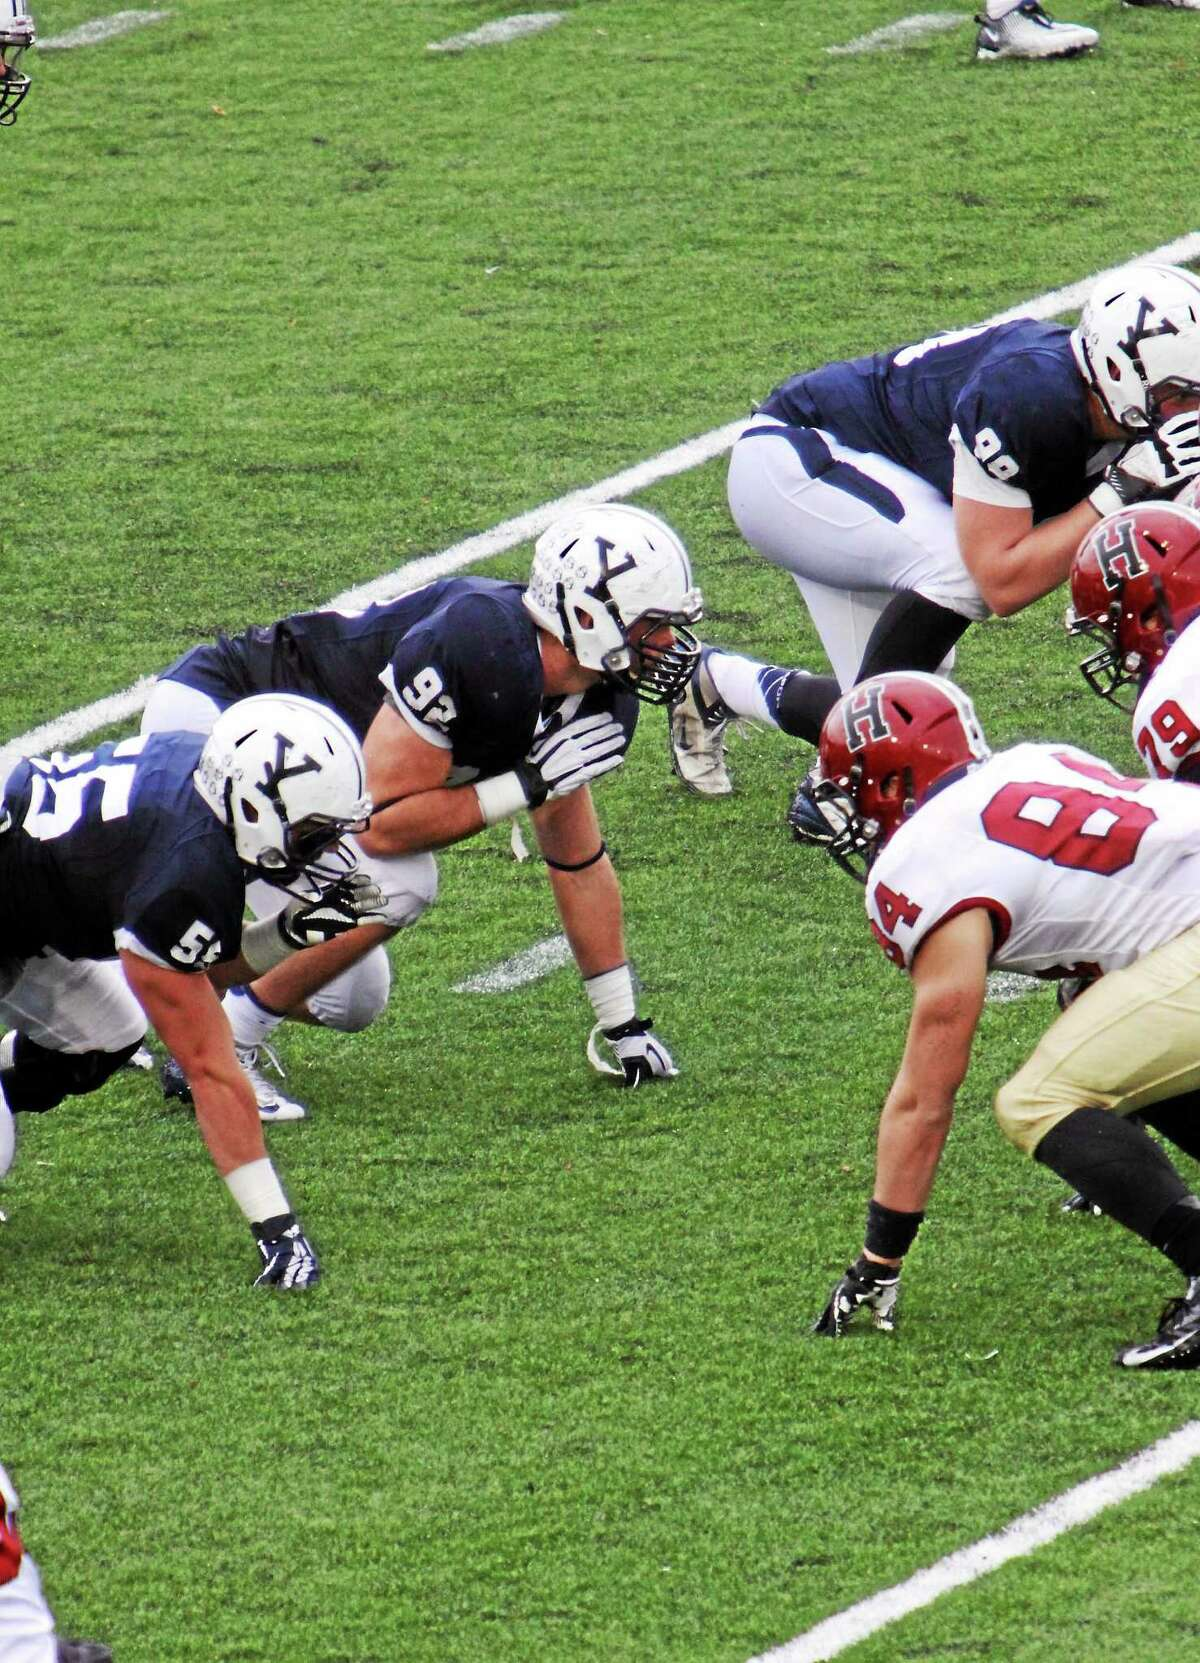 Yale's Peter Gerson is making the move from defensive end to tight end this season.